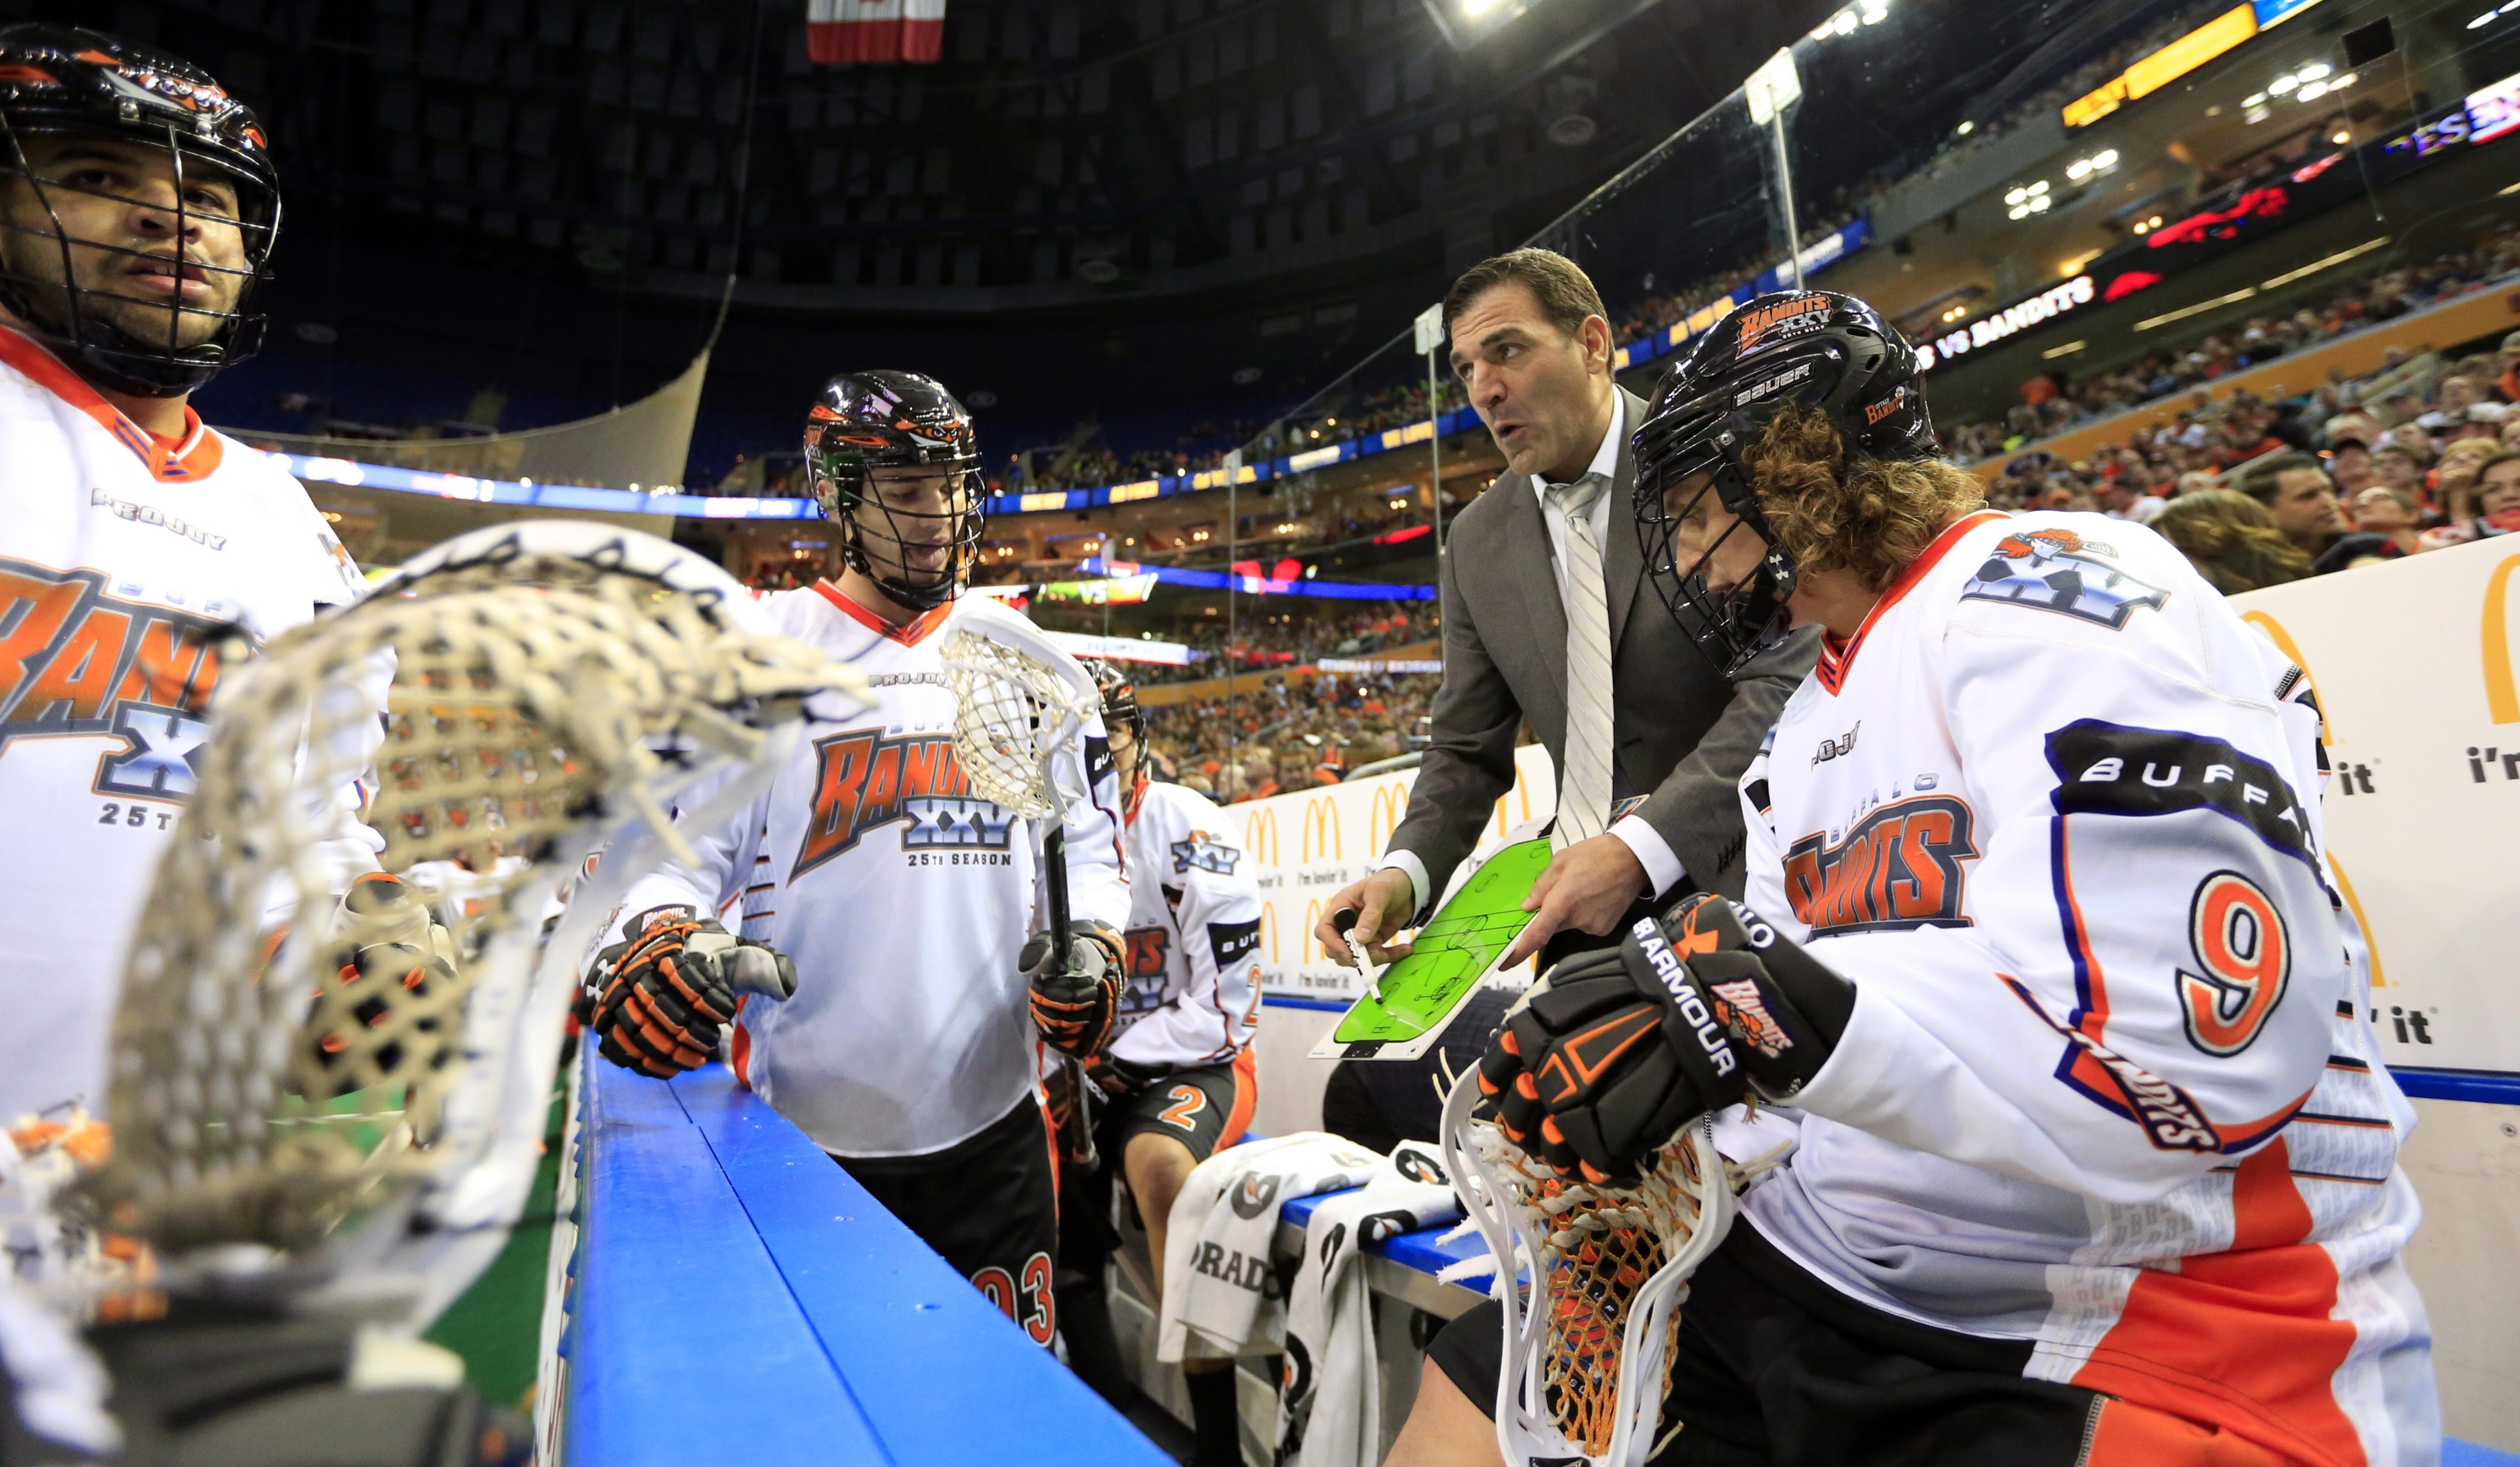 New Bandits assistant coach John Tavares talks to his team during a timeout during Saturday's game.